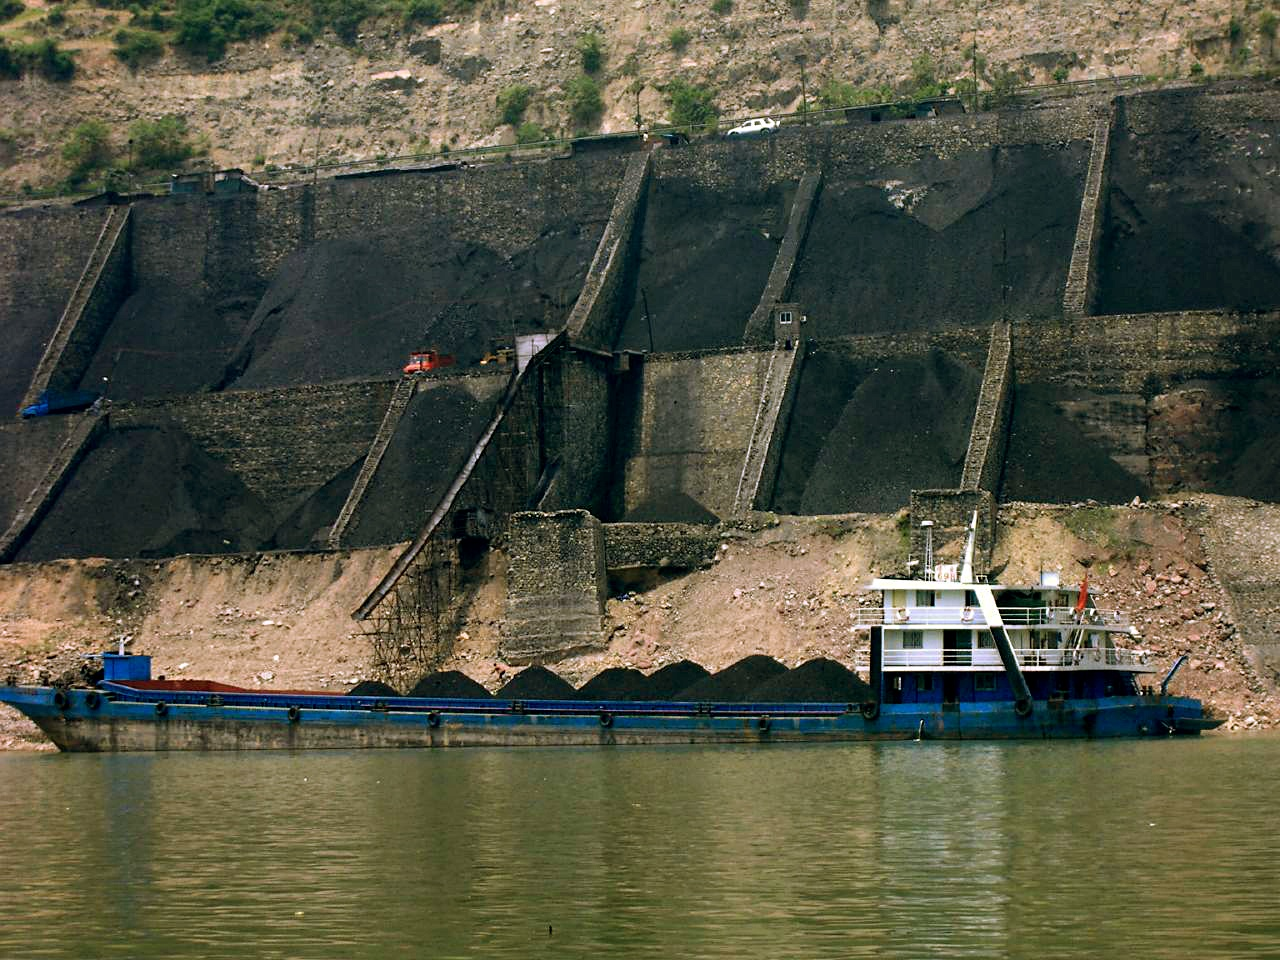 china's role in mekong energy and No aspect of china's fast-growing role and influence in the mekong  used to  send electricity to the factories and cities of guangdong province,.